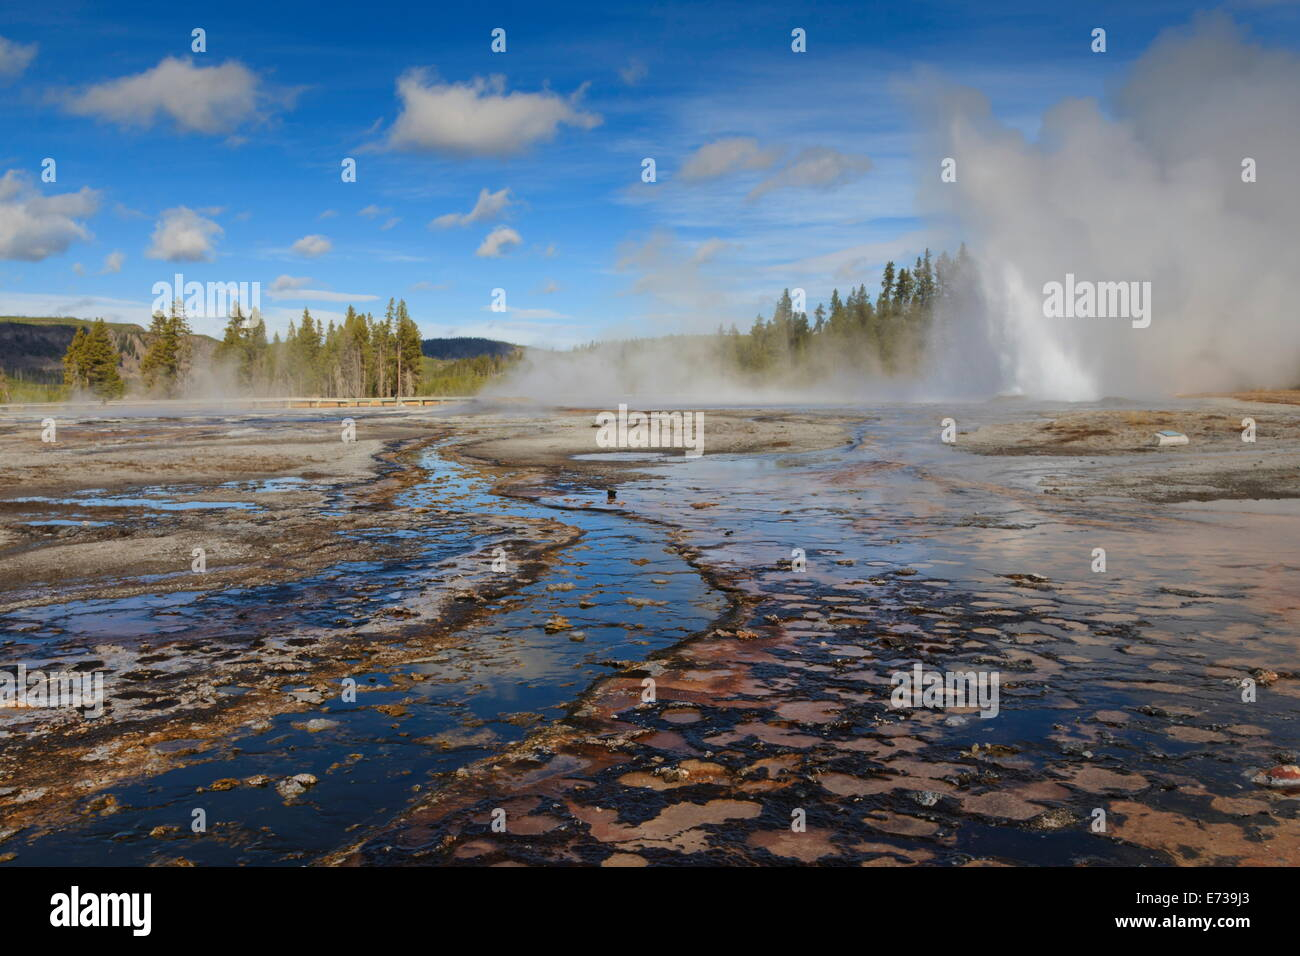 Daisy Geyser erupts at an angle, Upper Geyser Basin, Yellowstone National Park, UNESCO Site, Wyoming, USA - Stock Image